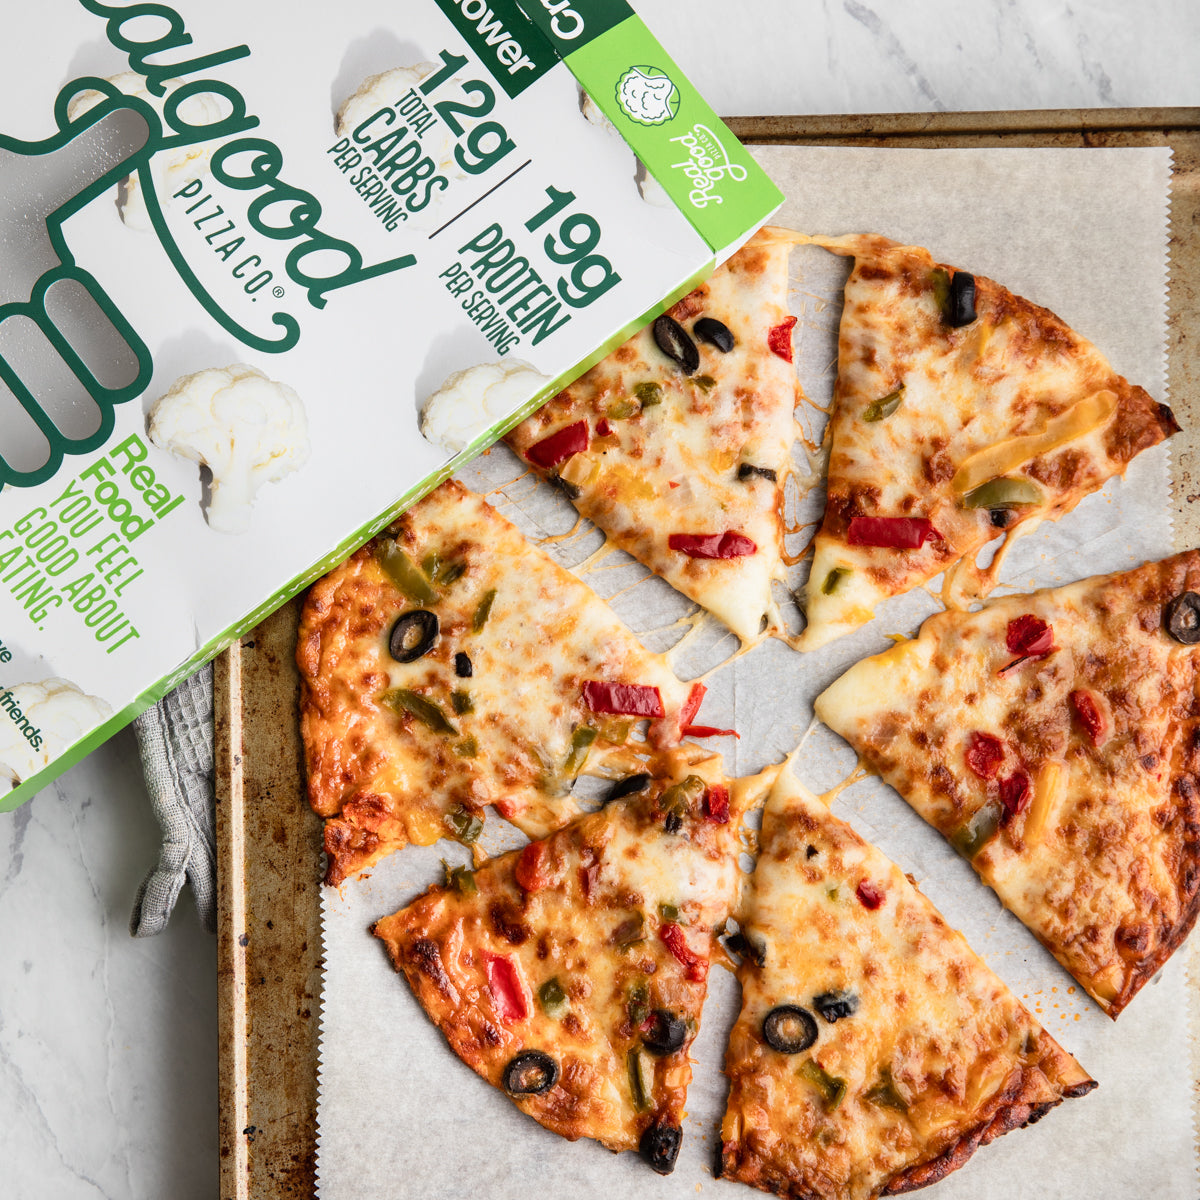 Real Good Foods Makes Pizza For Diabetics